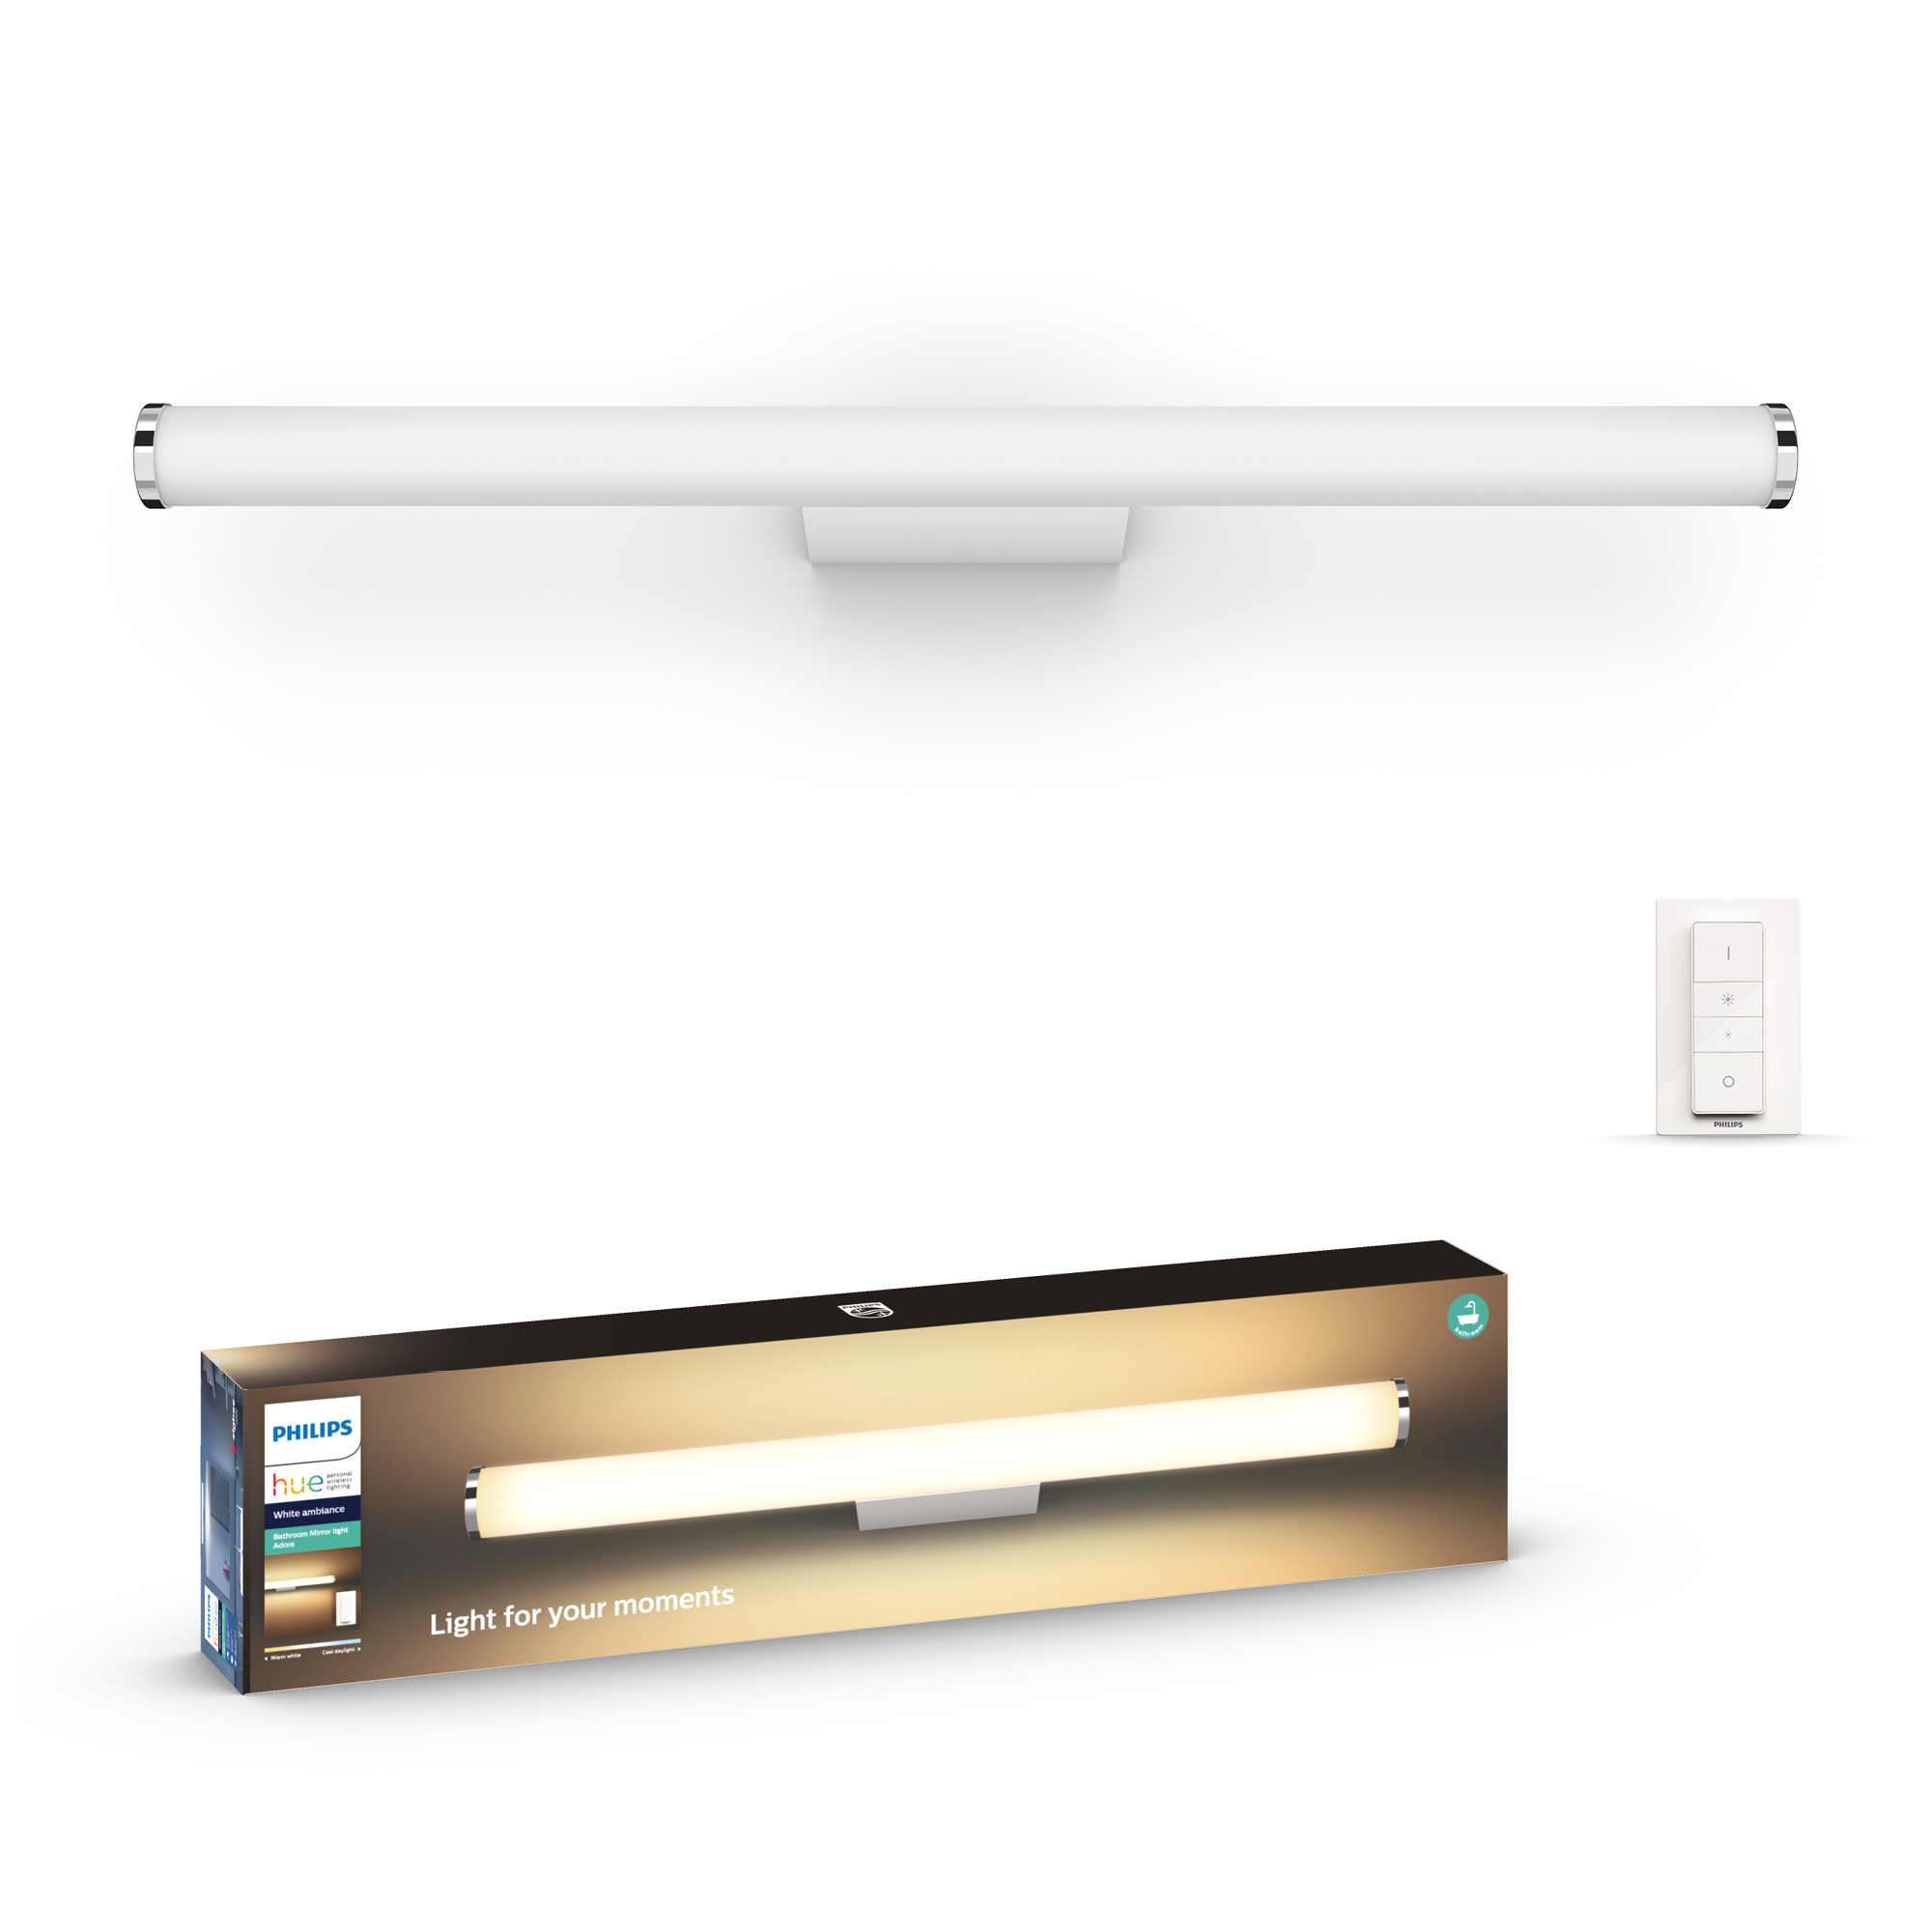 Kaufe Philips Hue Adore Wall Lamp White 1x20w Bathroom White Ambiance